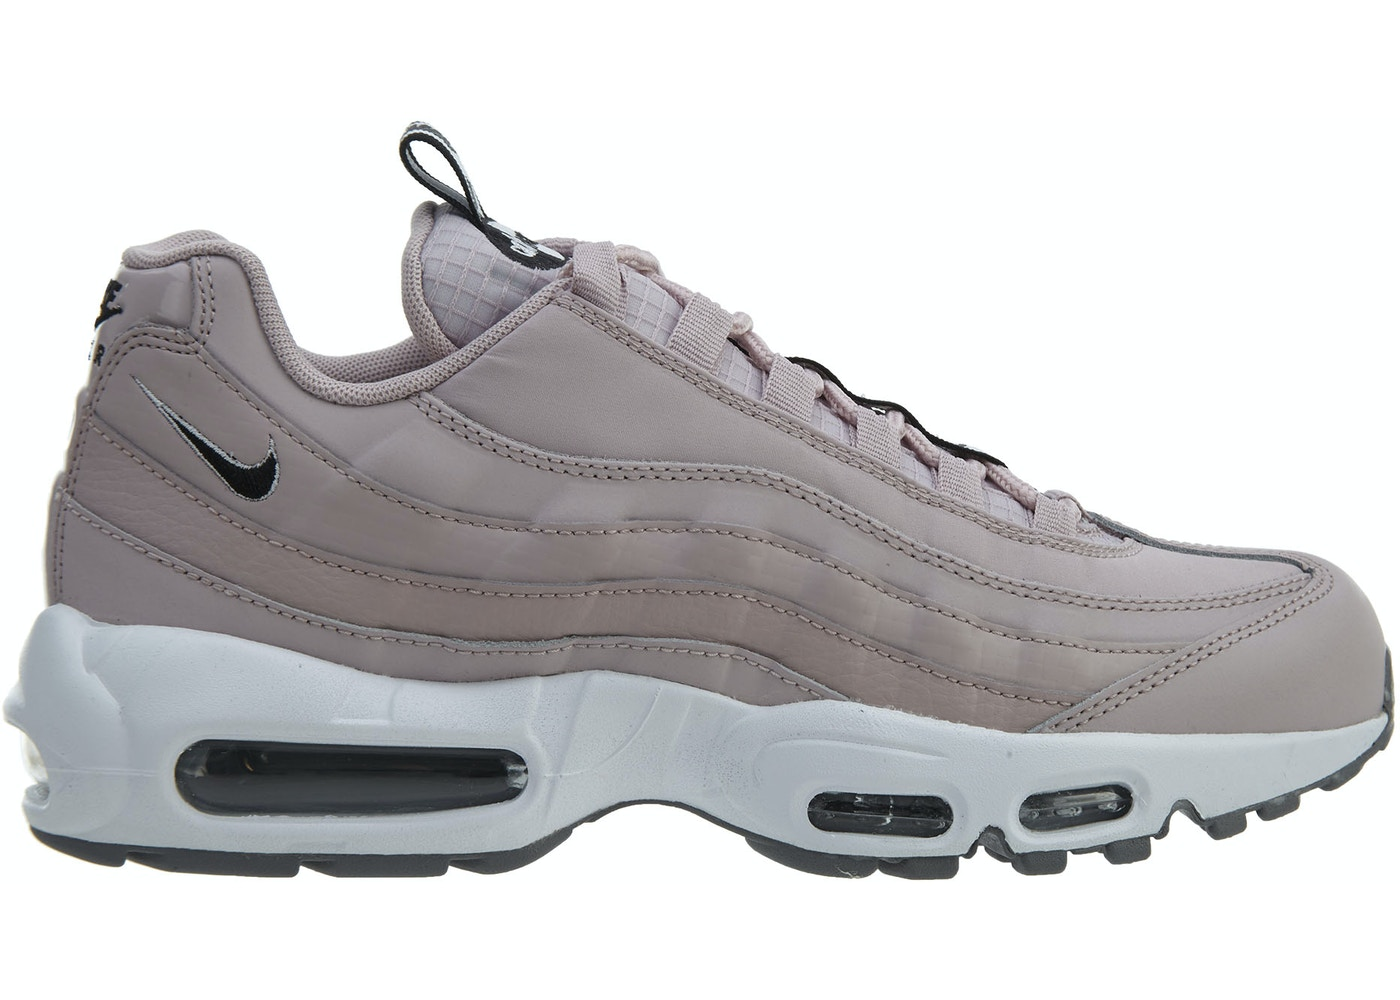 e20a253f764 Buy Nike Air Max 95 Shoes   Deadstock Sneakers